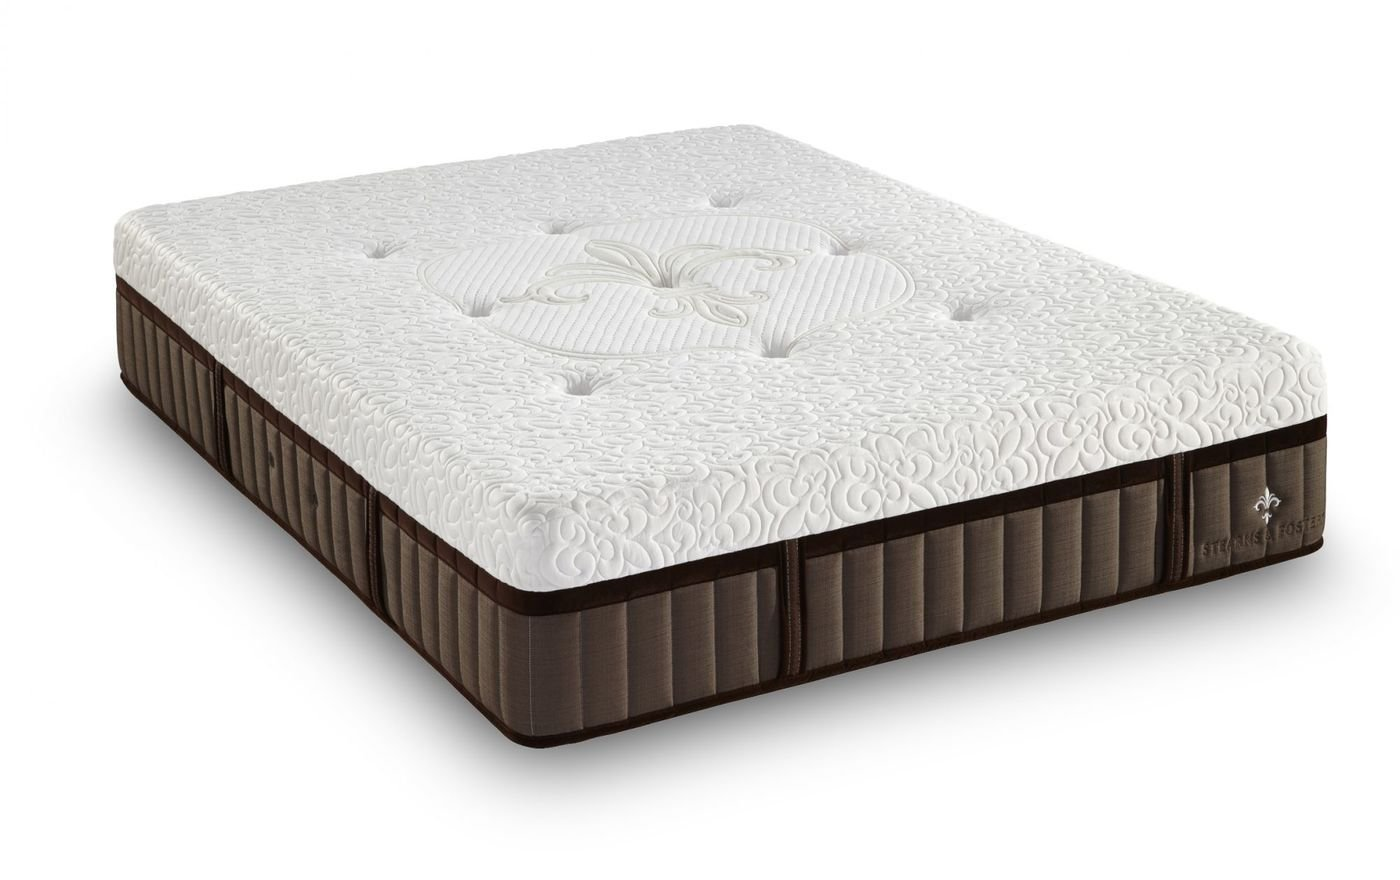 Stearns and Foster Lux Estate Hybrid Mattress